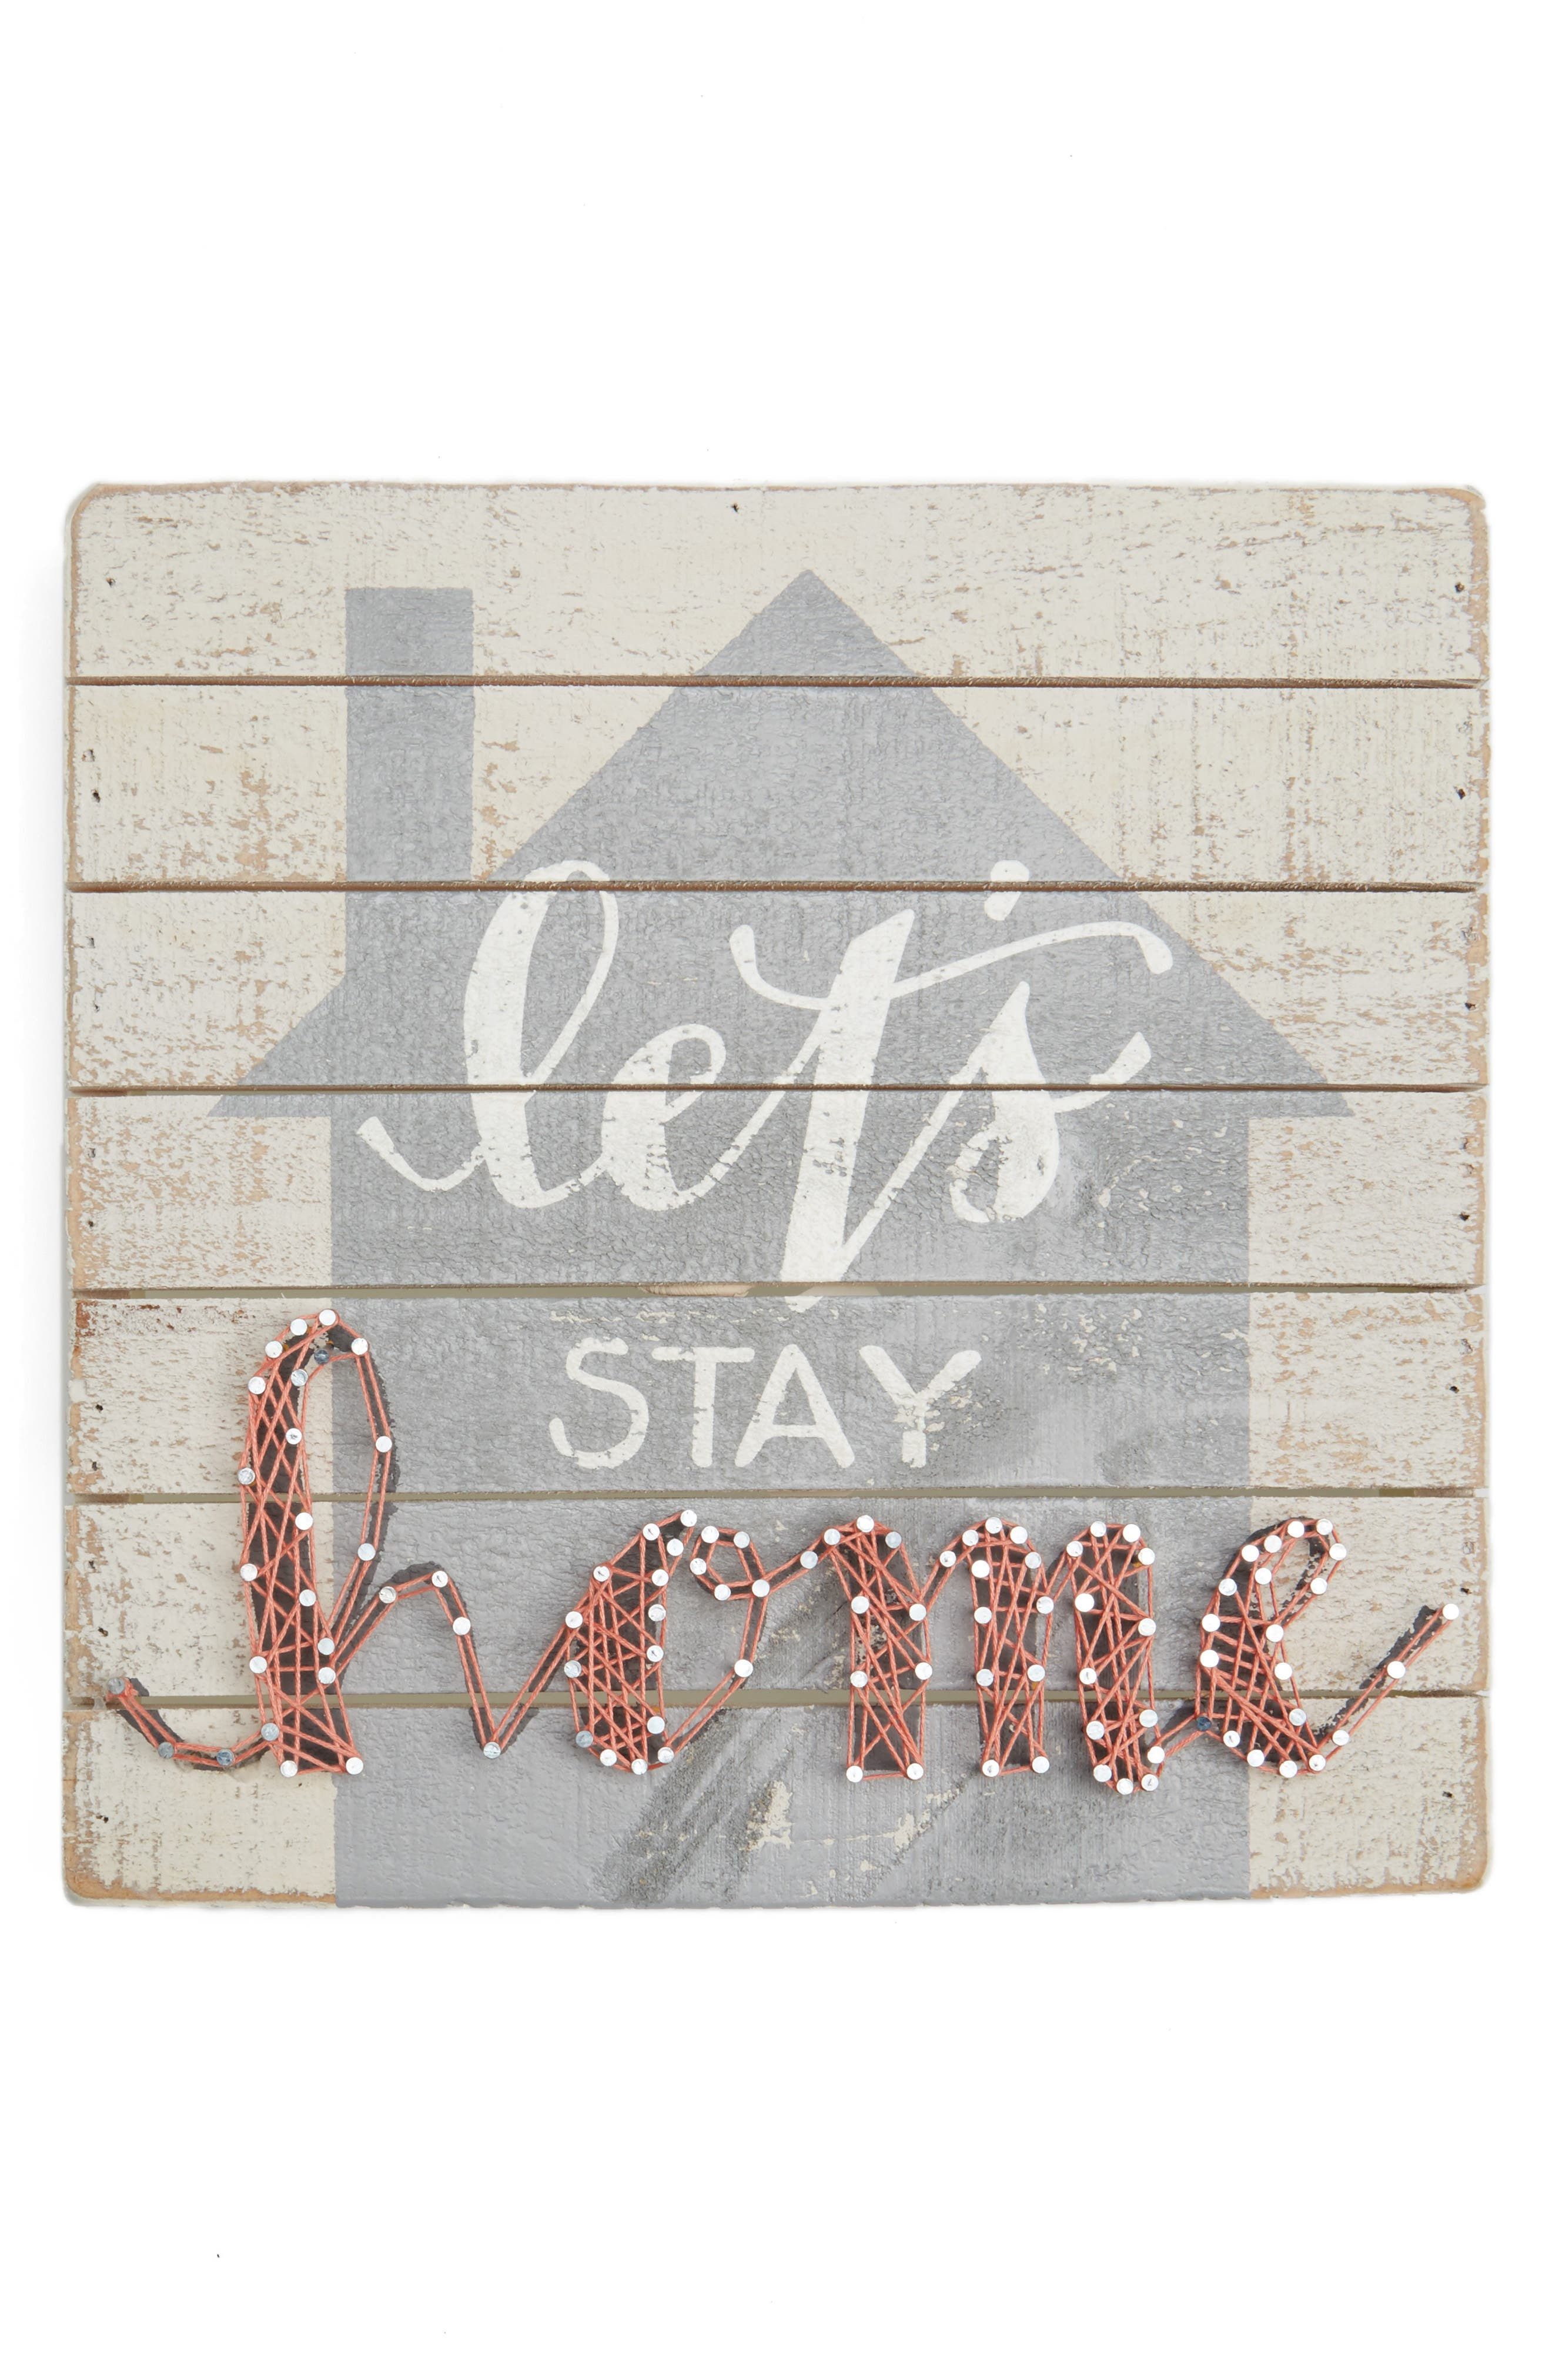 Let's Stay Home String Art Box Sign,                             Main thumbnail 1, color,